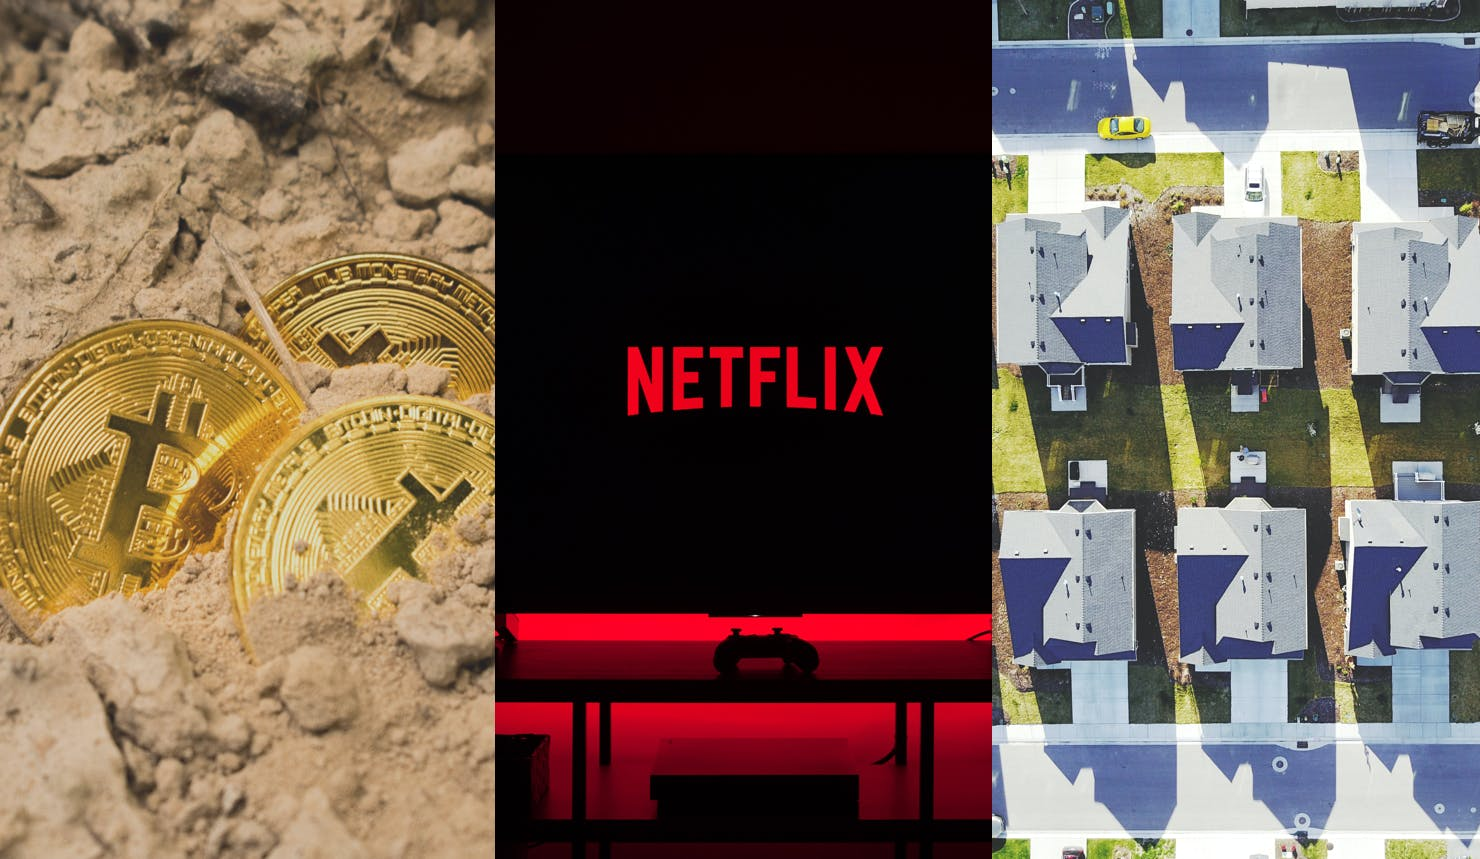 Bans, raids, & sustainability of crypto mining—Skeptics don't have high hopes for Netflix's gaming aspirations—Amazon Sidewalk experiments with wireless mesh